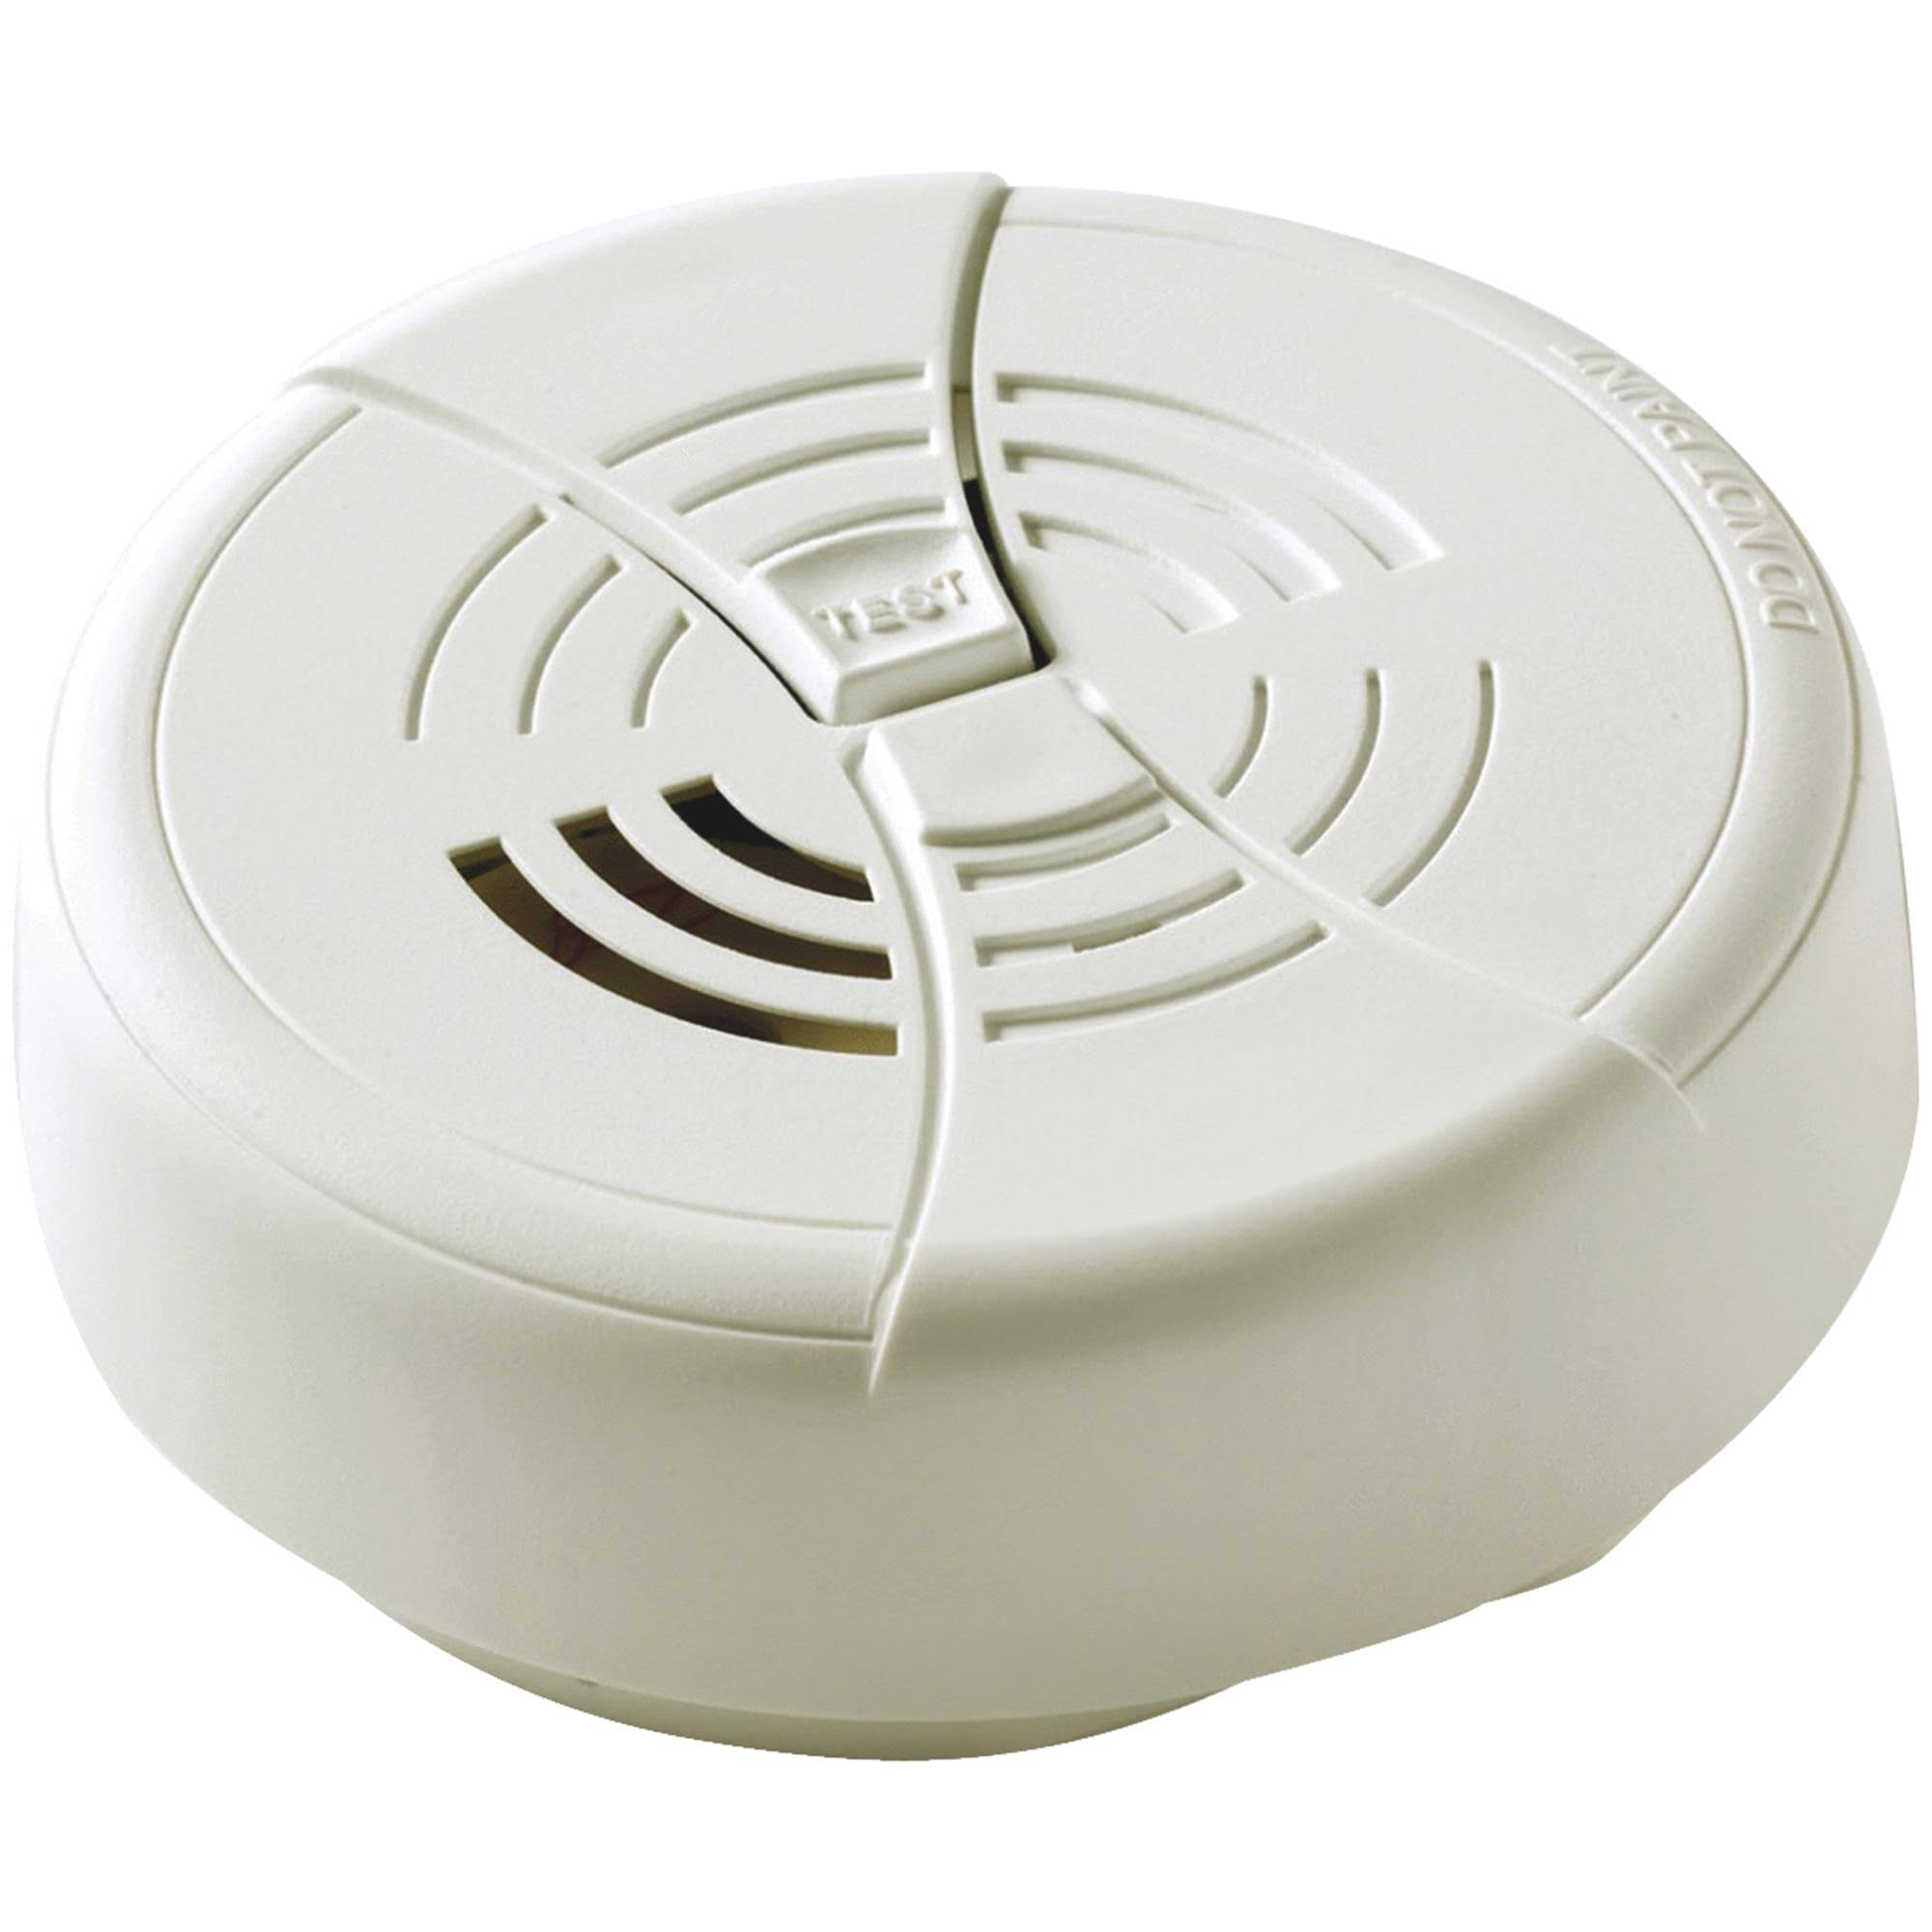 First Alert Battery Powered Smoke Detectors - with Hinged Cover, 9V, 2pk